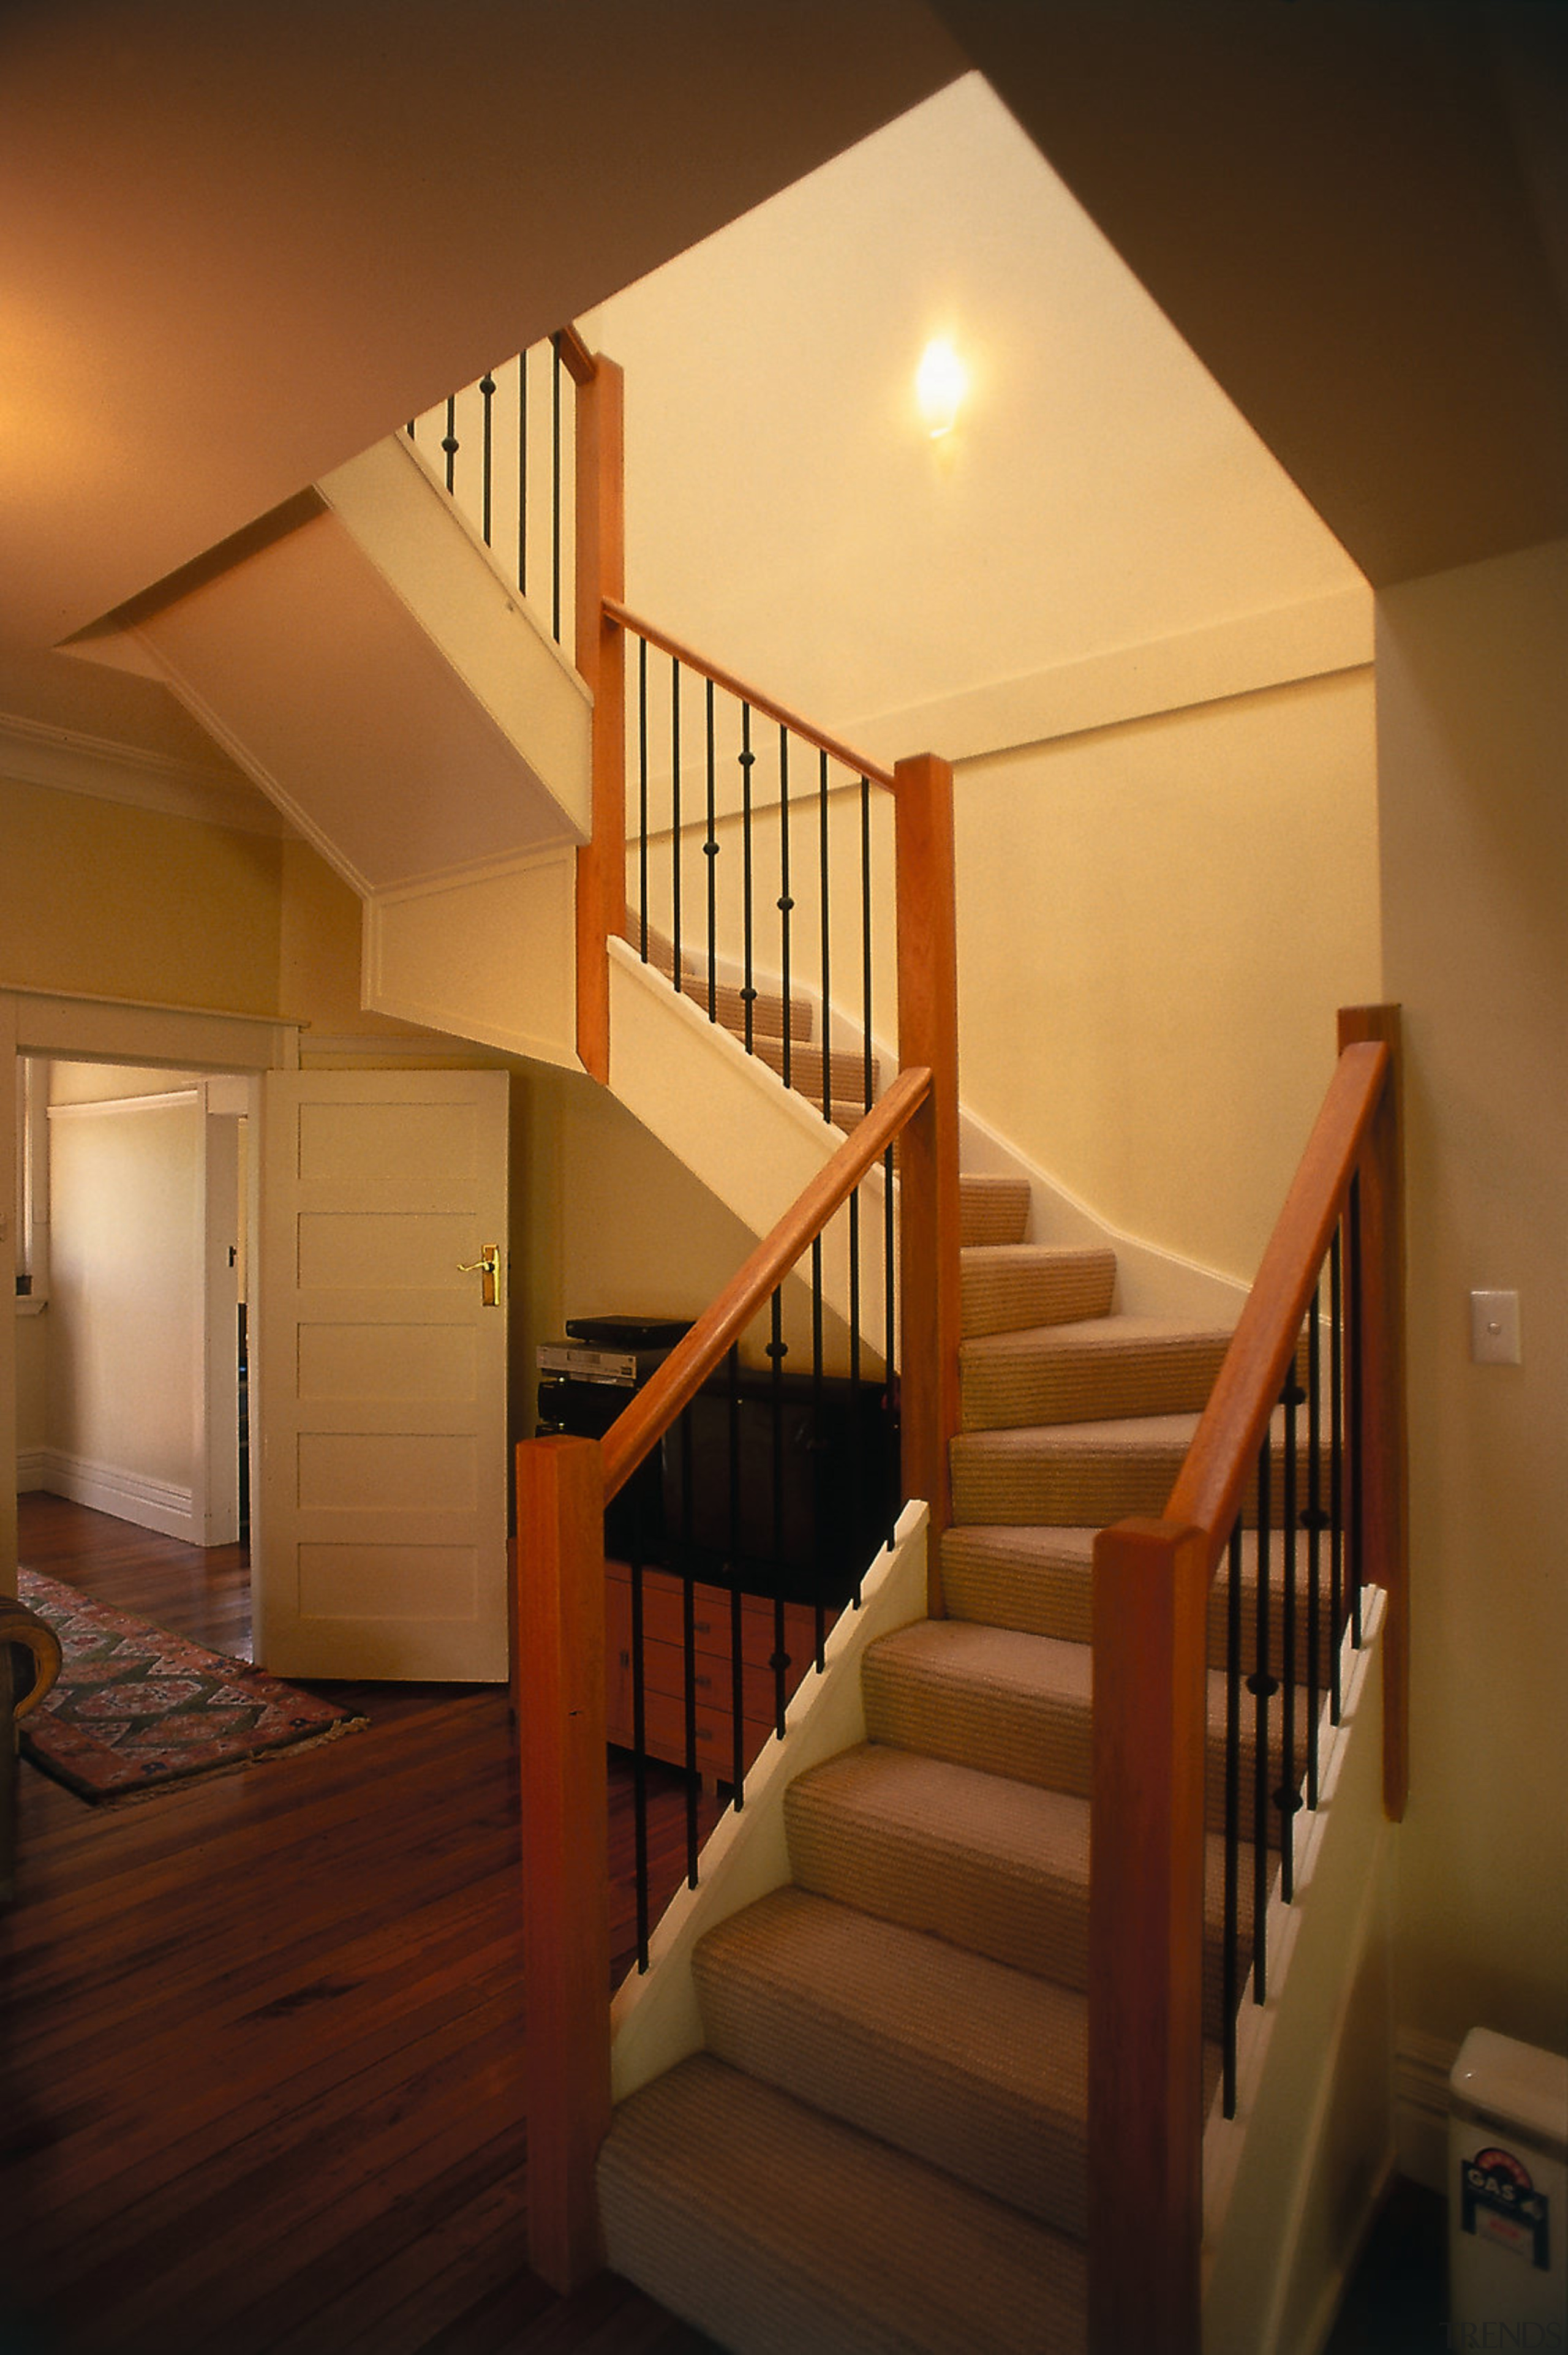 view fo stairway - view fo stairway - architecture, baluster, ceiling, daylighting, estate, floor, flooring, handrail, hardwood, home, house, interior design, lighting, property, real estate, stairs, wall, wood, wood flooring, wood stain, brown, orange